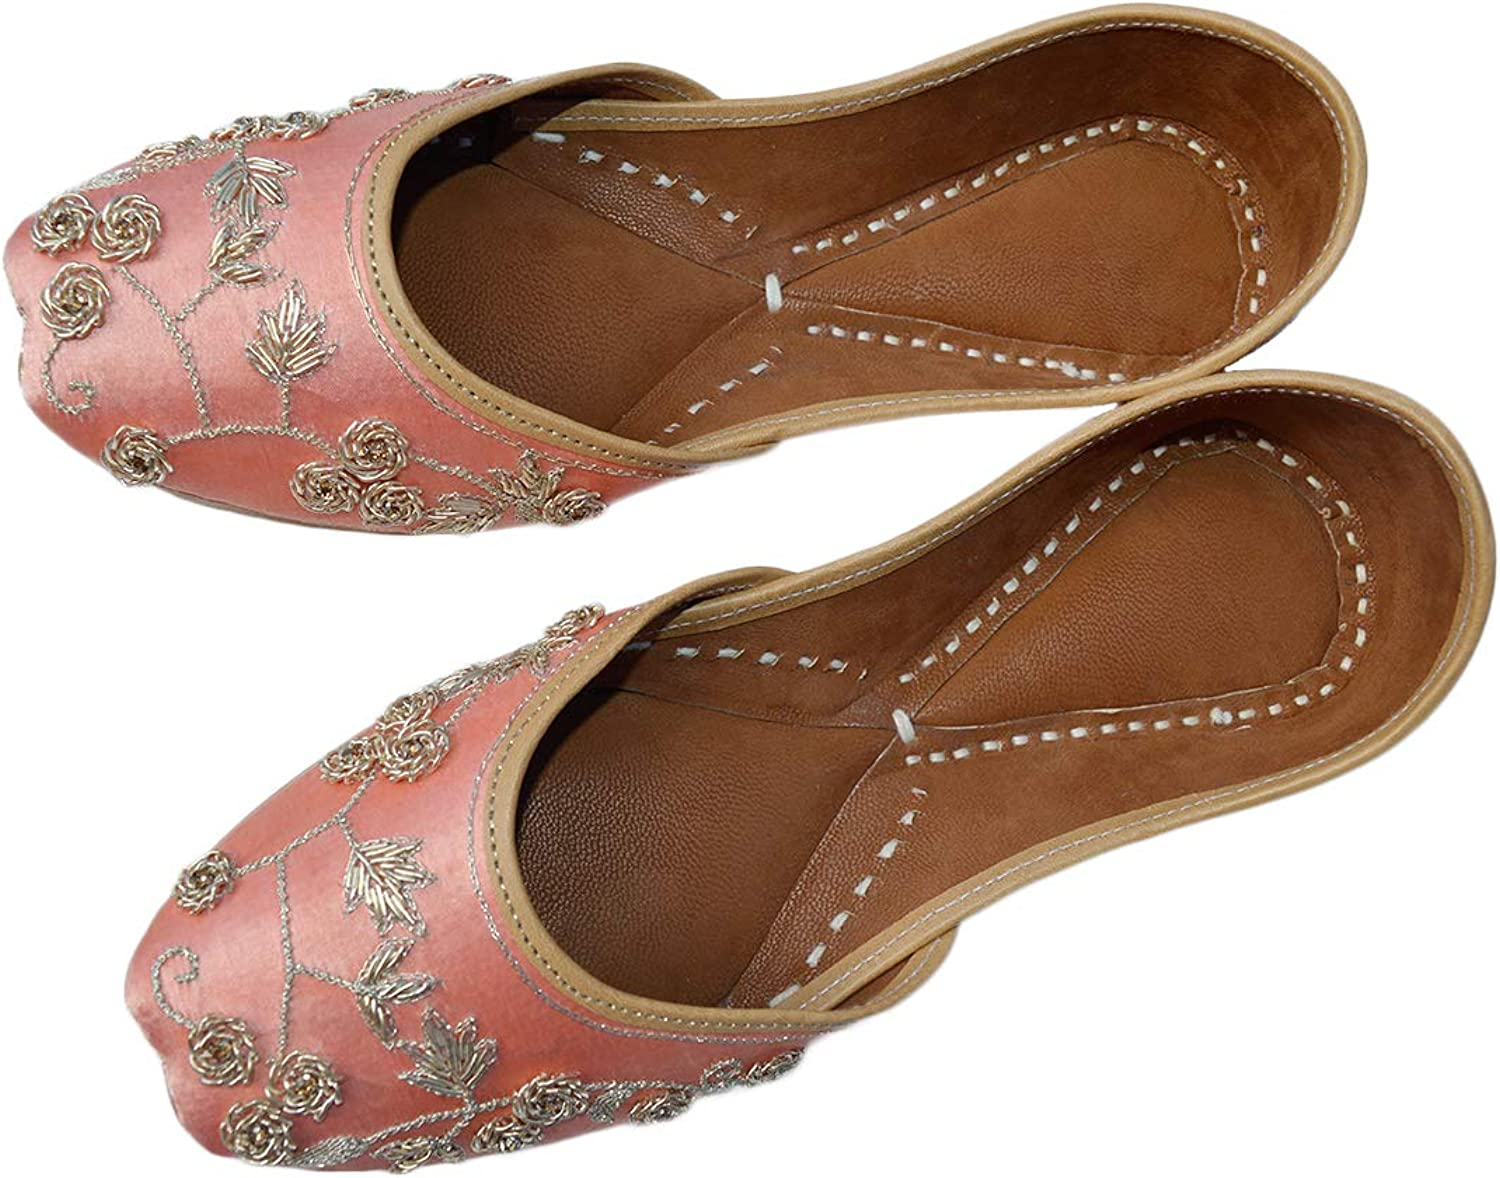 The Krafts Indian Ethnic Embroidered Jutti Mojari Ballet Flats Traditional Pump Shoes for Women